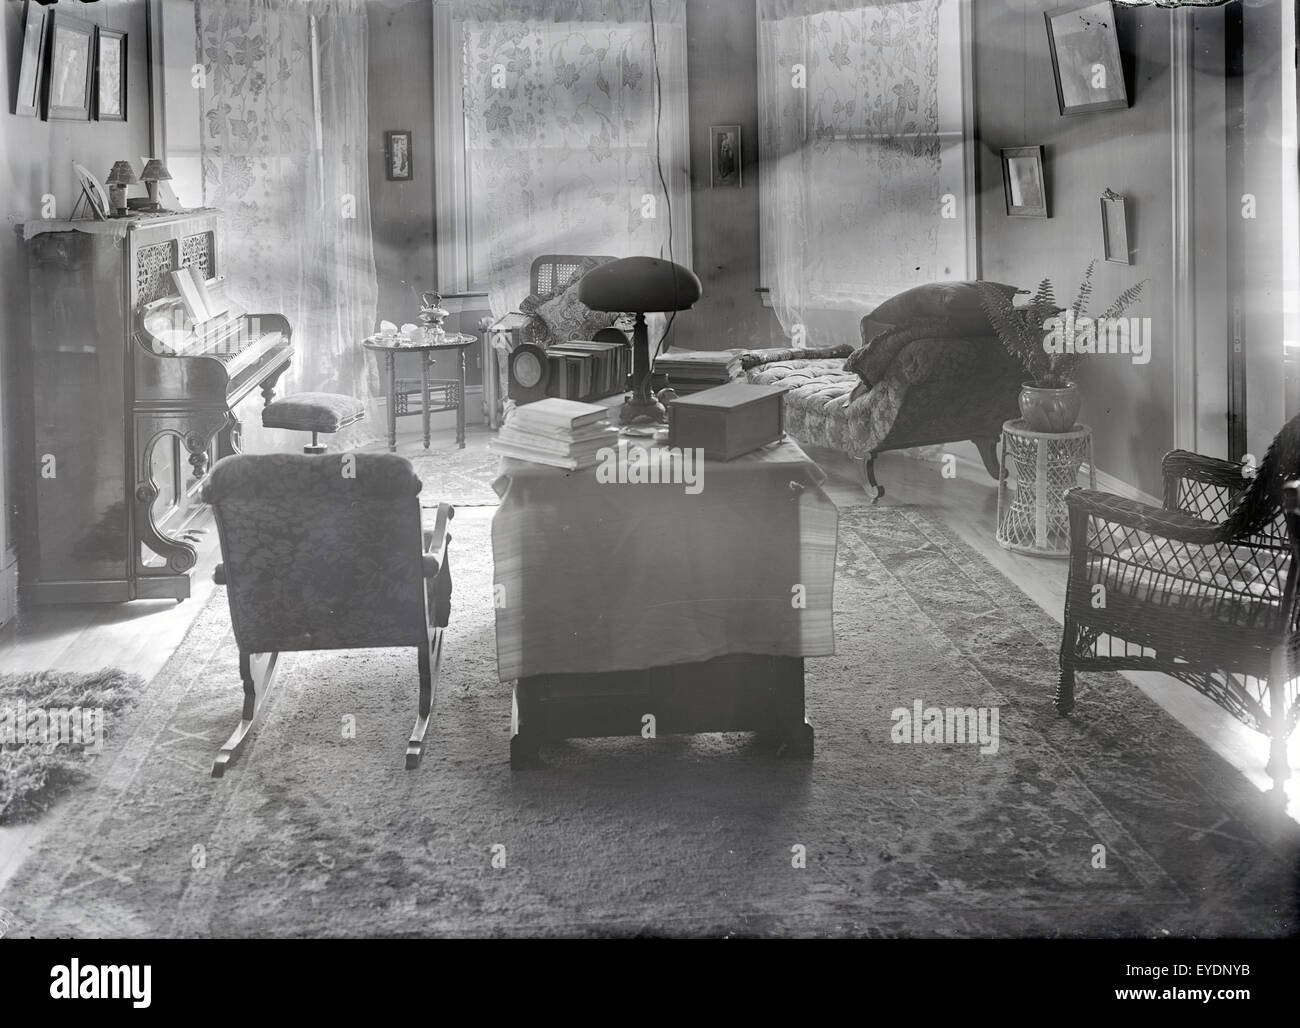 Antique c1910 photograph of a late Victorian, circa 1910s parlor with upright piano and furnishings. See Alamy image - Stock Image